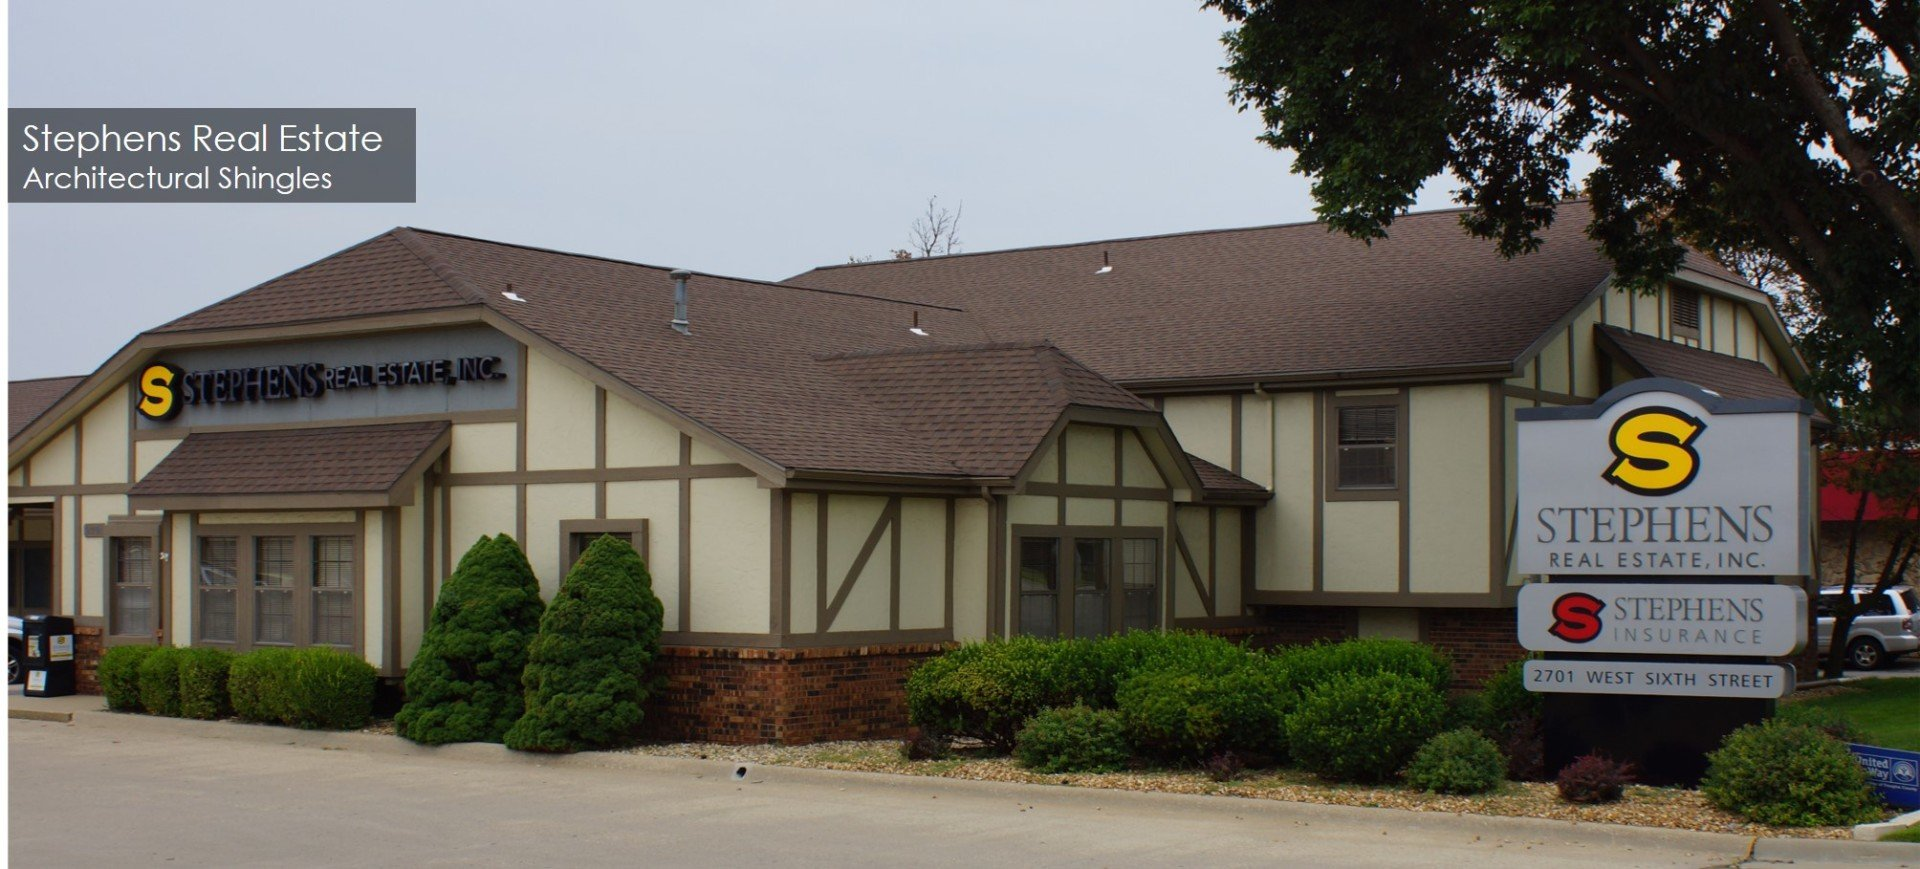 Commercial Roofing Services Lawrence Ks Roof Installers